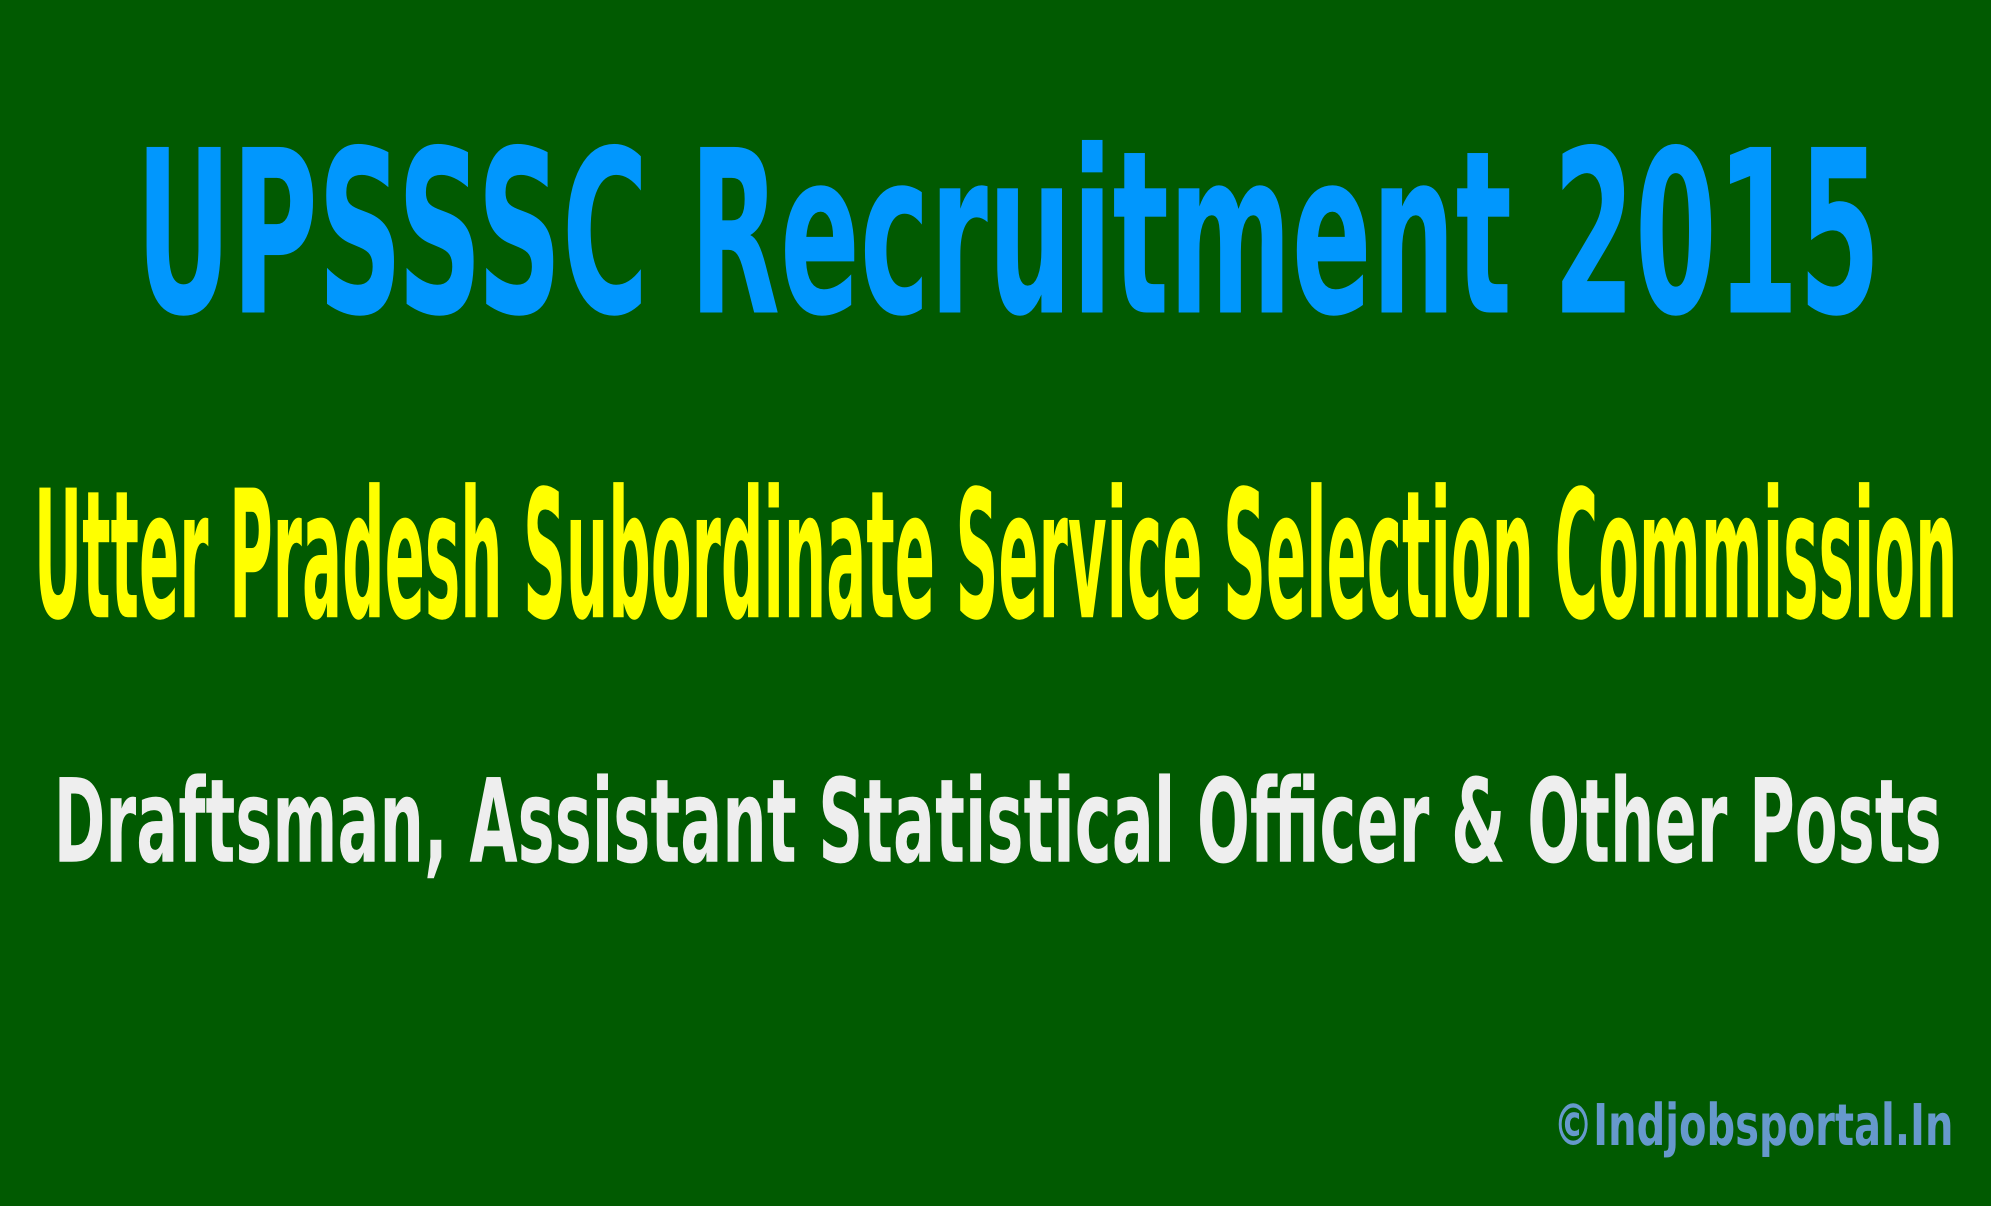 UPSSSC Recruitment 2015 Apply Online For 193 Draftsman, Assistant Statistical Officer & Other Posts